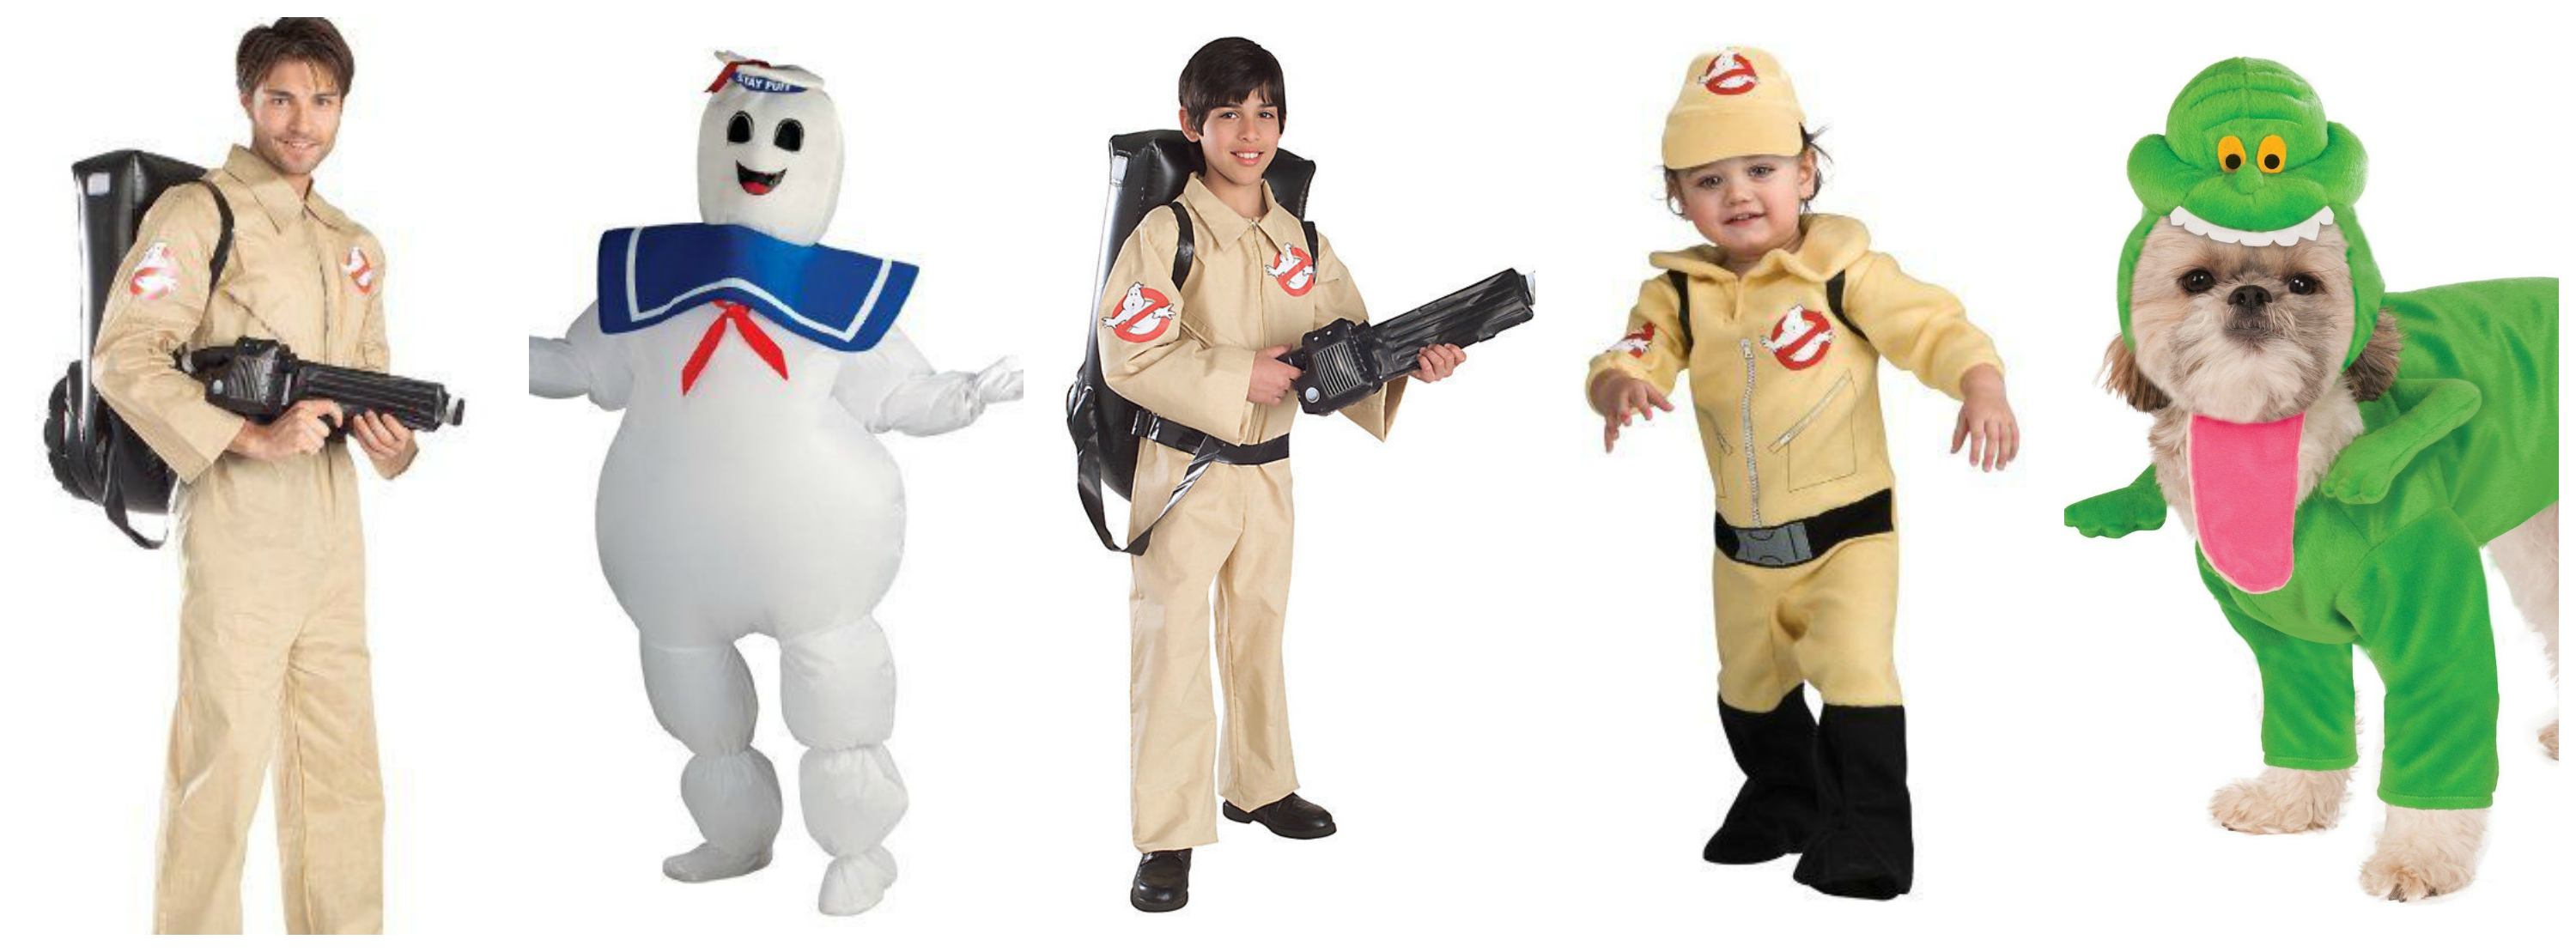 Ghostbusters Family Halloween Costumes